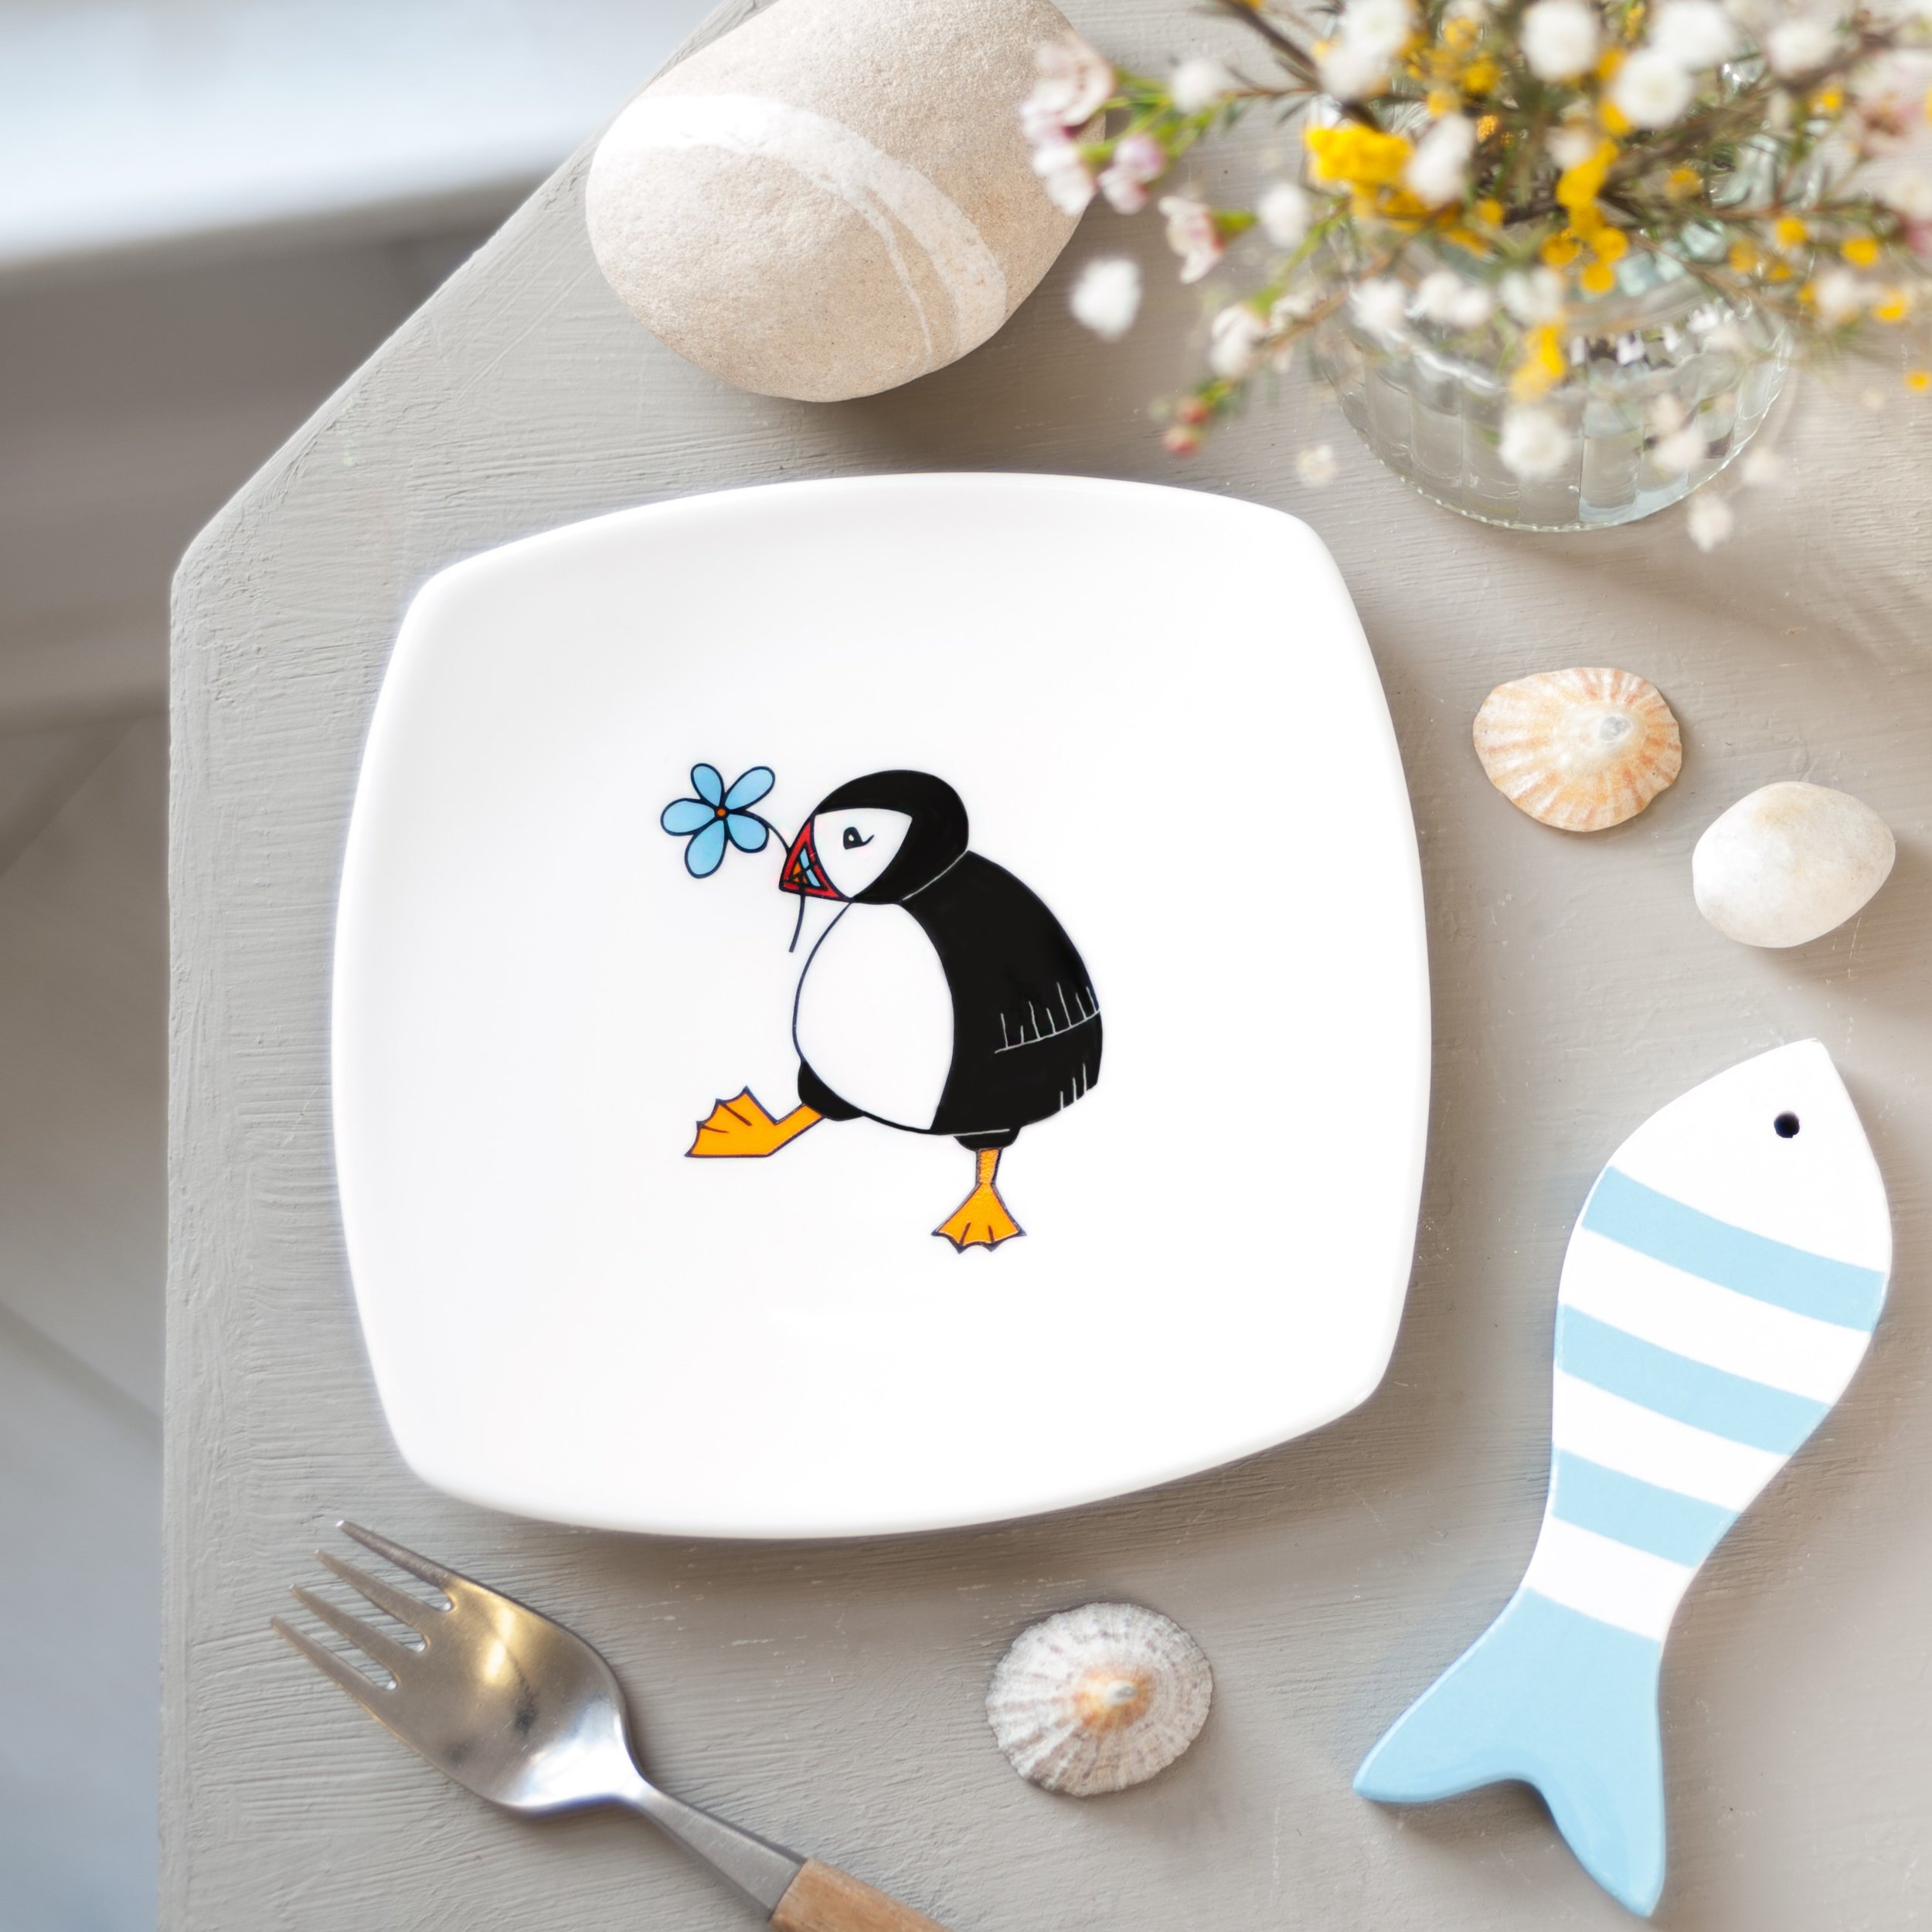 Plates by Helen Russell Creations